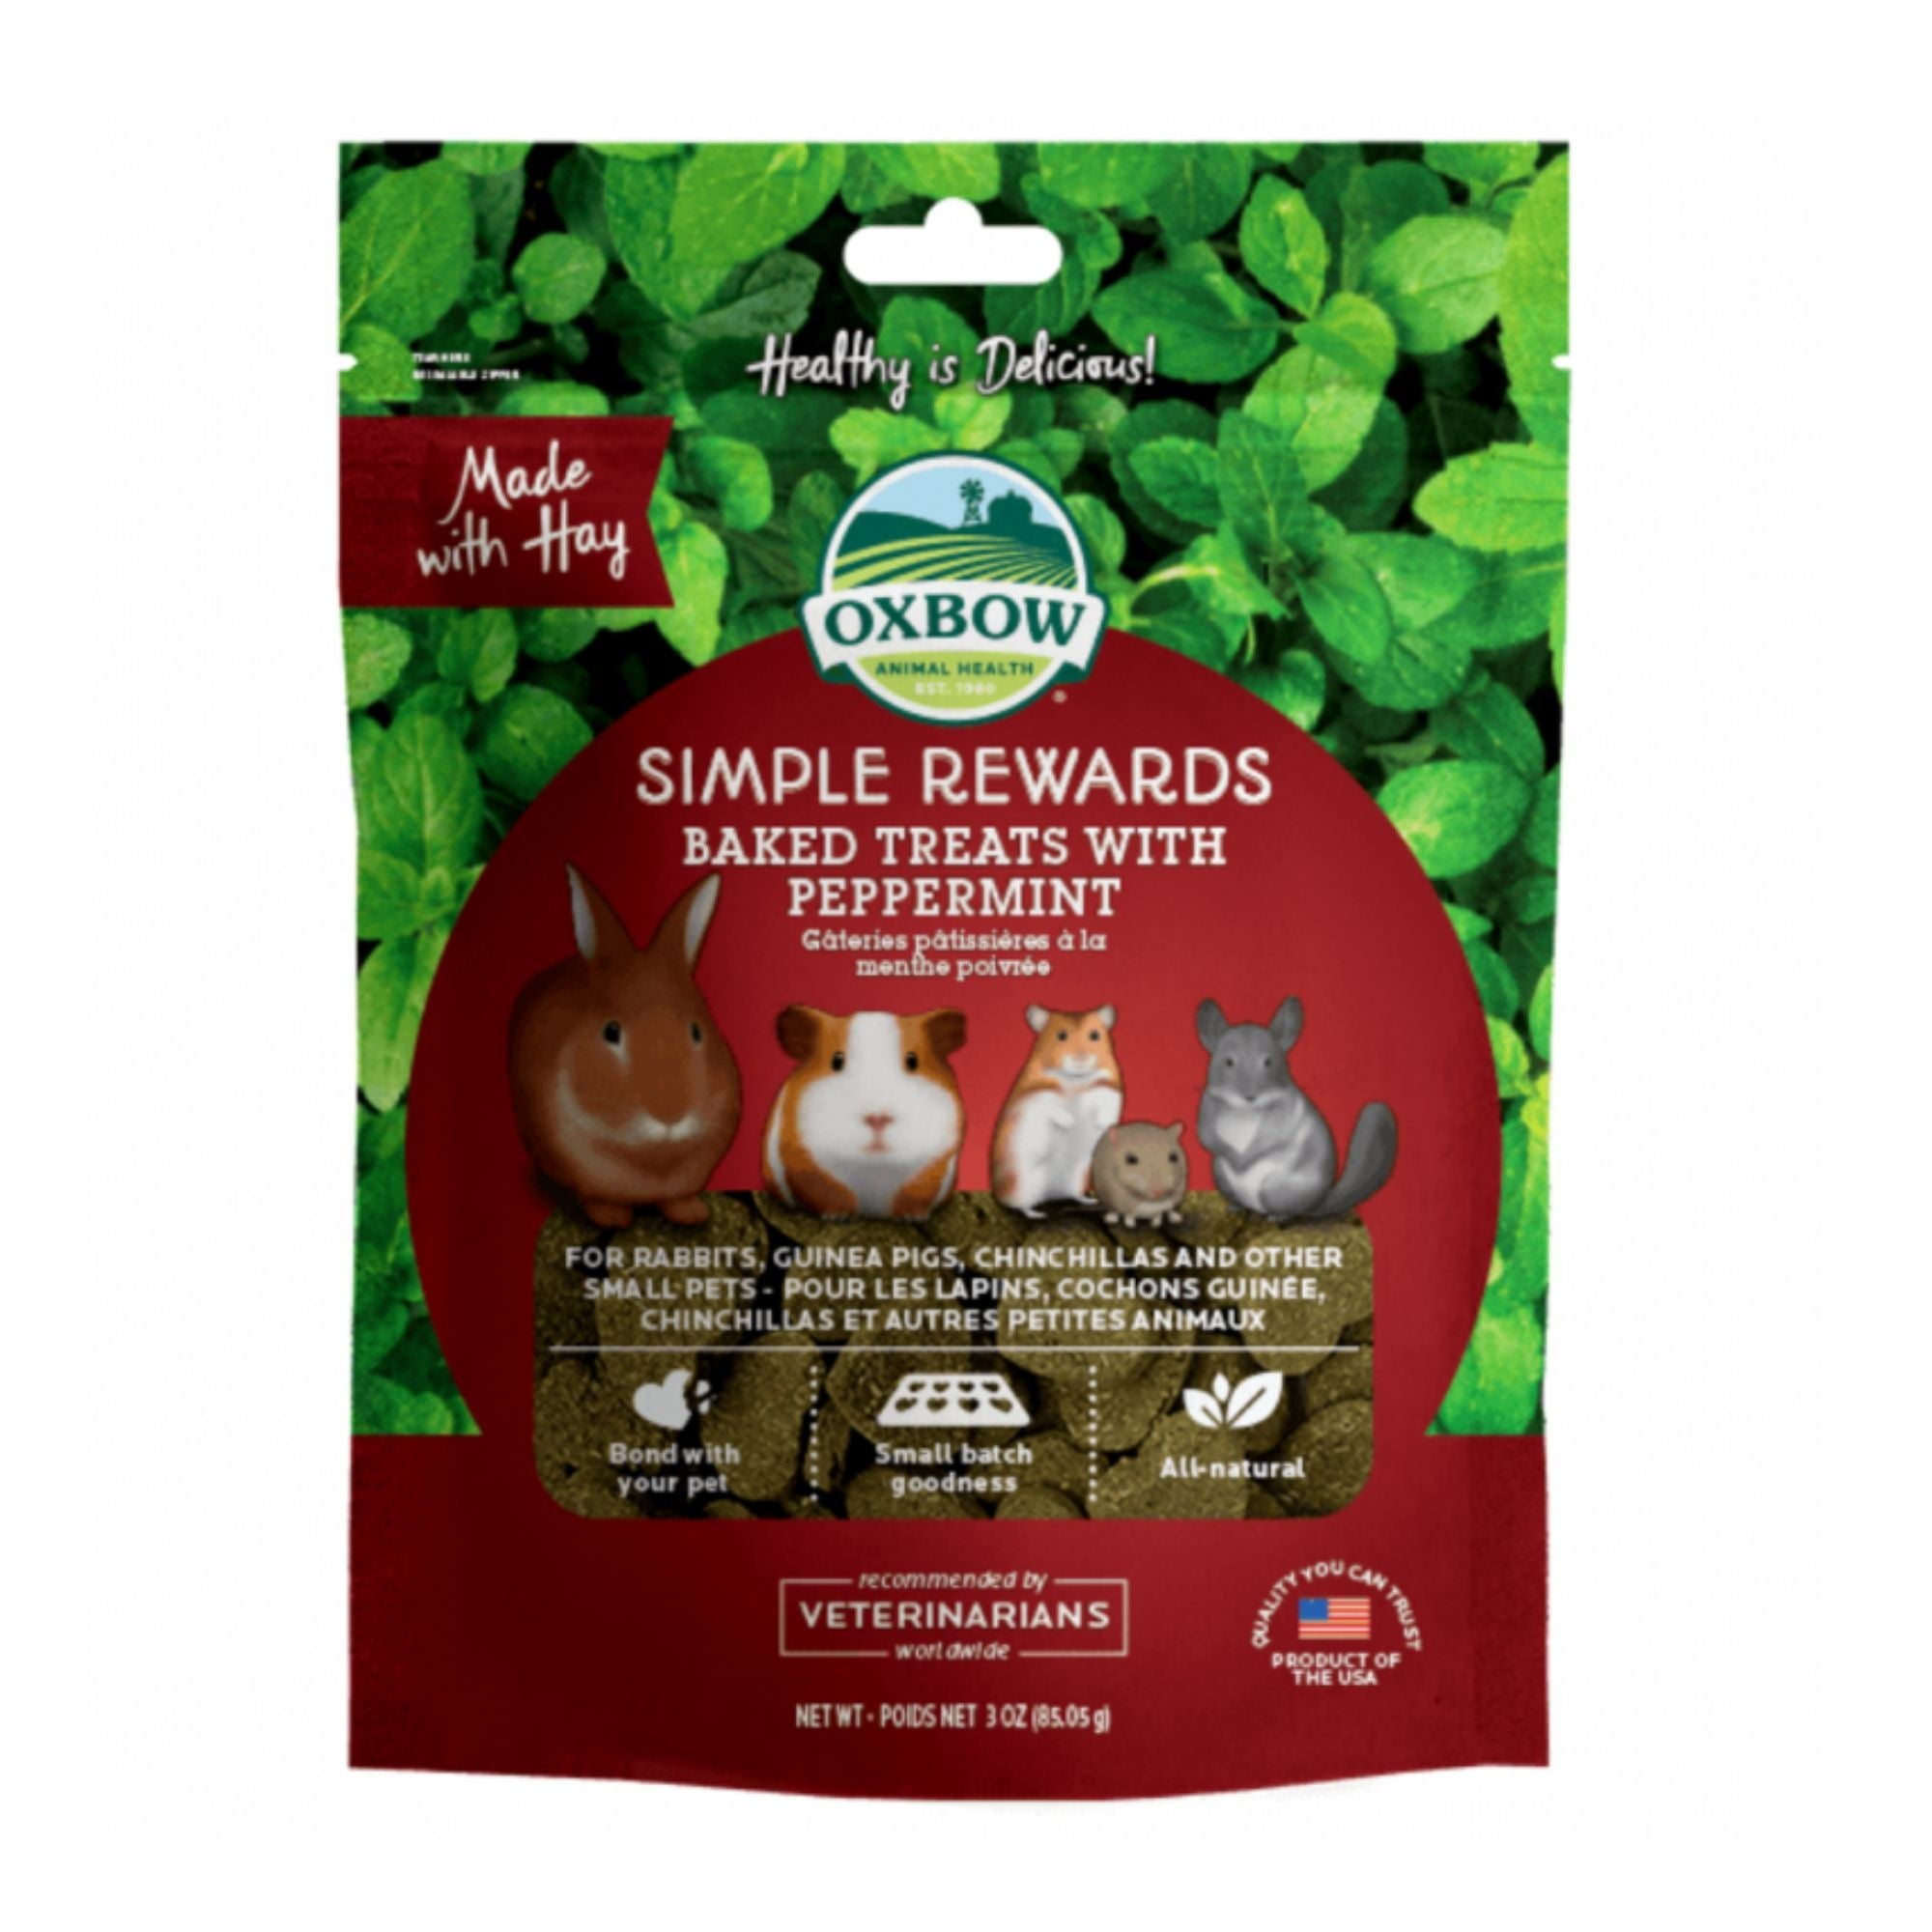 Oxbow Simple Rewards with Peppermint | Barks & Bunnies